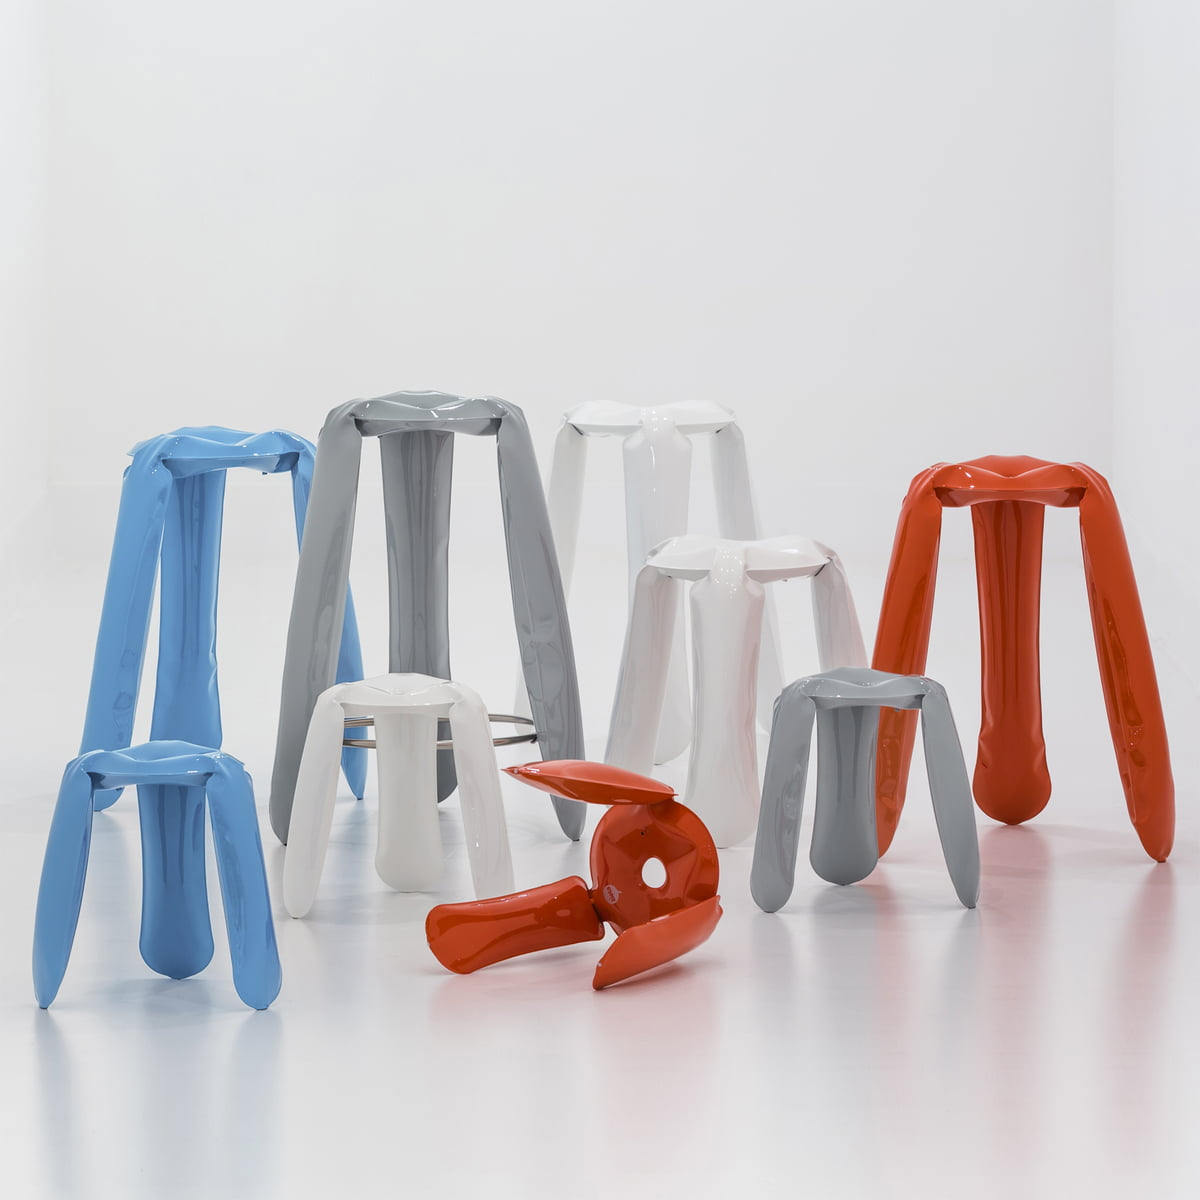 Buy Now The Plopp Bar Stool By Zieta At The Shop